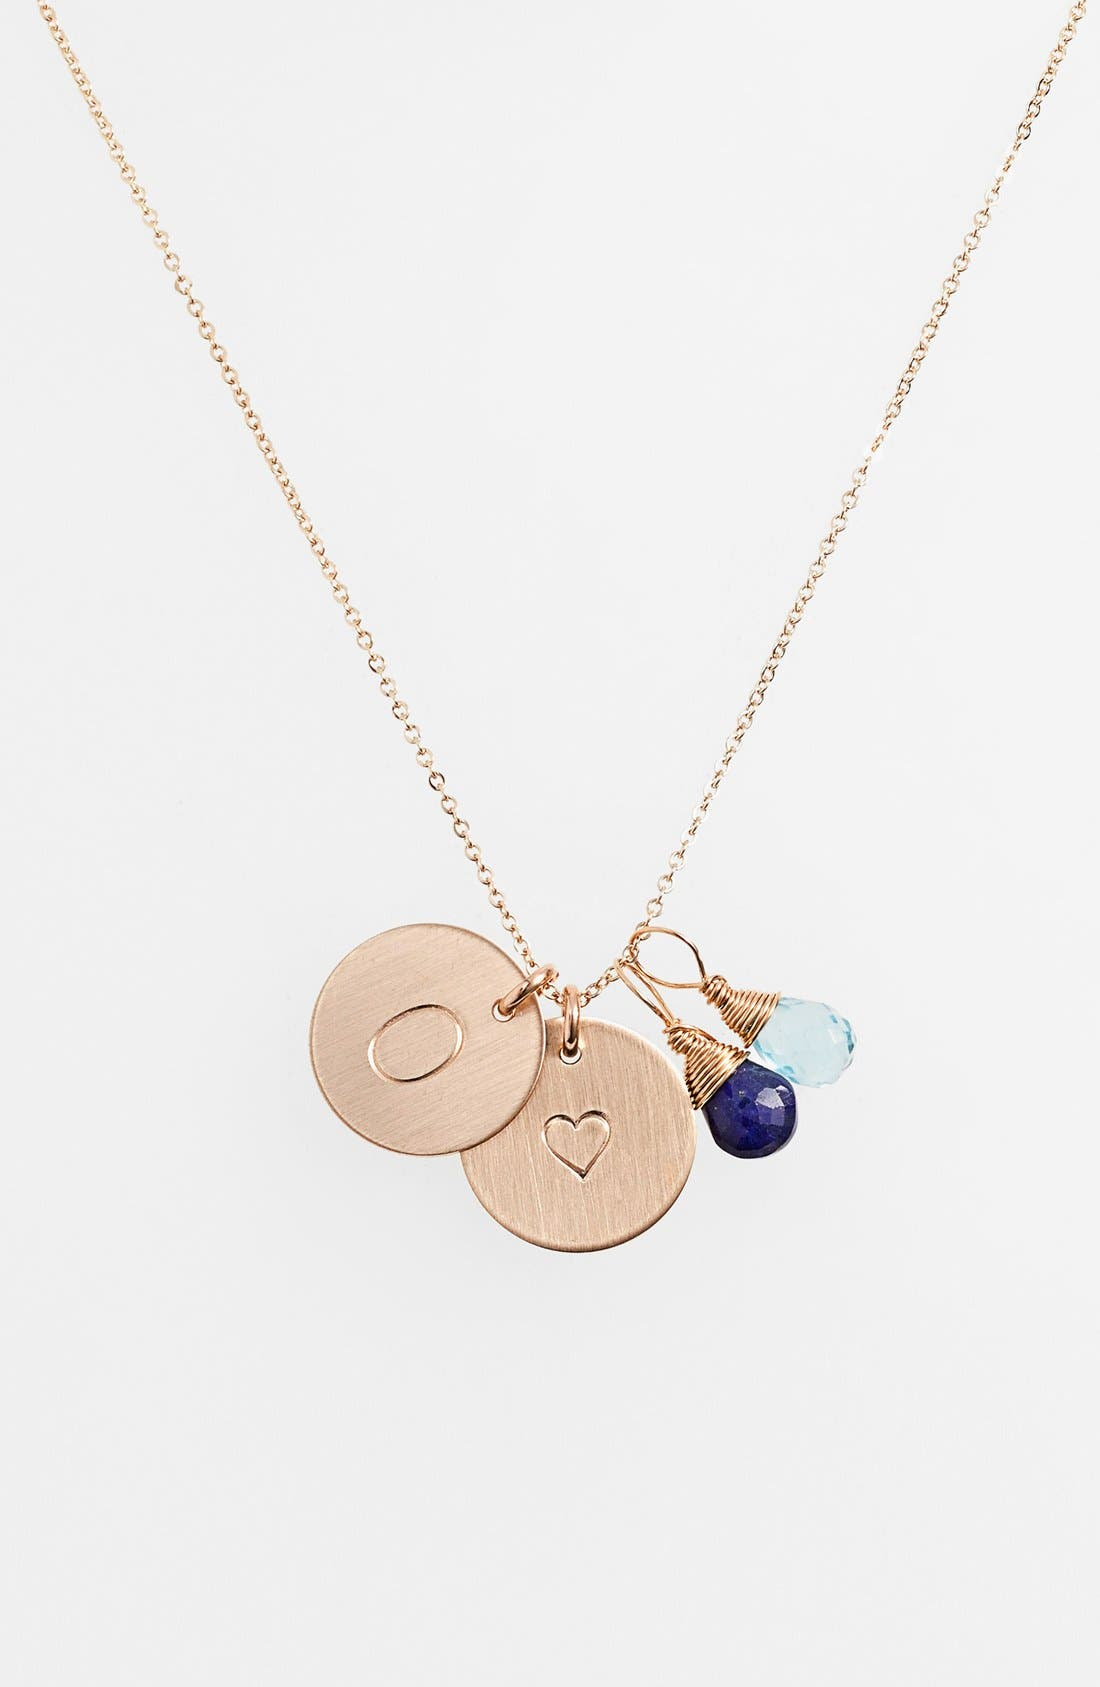 NASHELLE, Blue Quartz Initial & Heart 14k-Gold Fill Disc Necklace, Main thumbnail 1, color, ROYAL BLUE AND OCEAN BLUE O